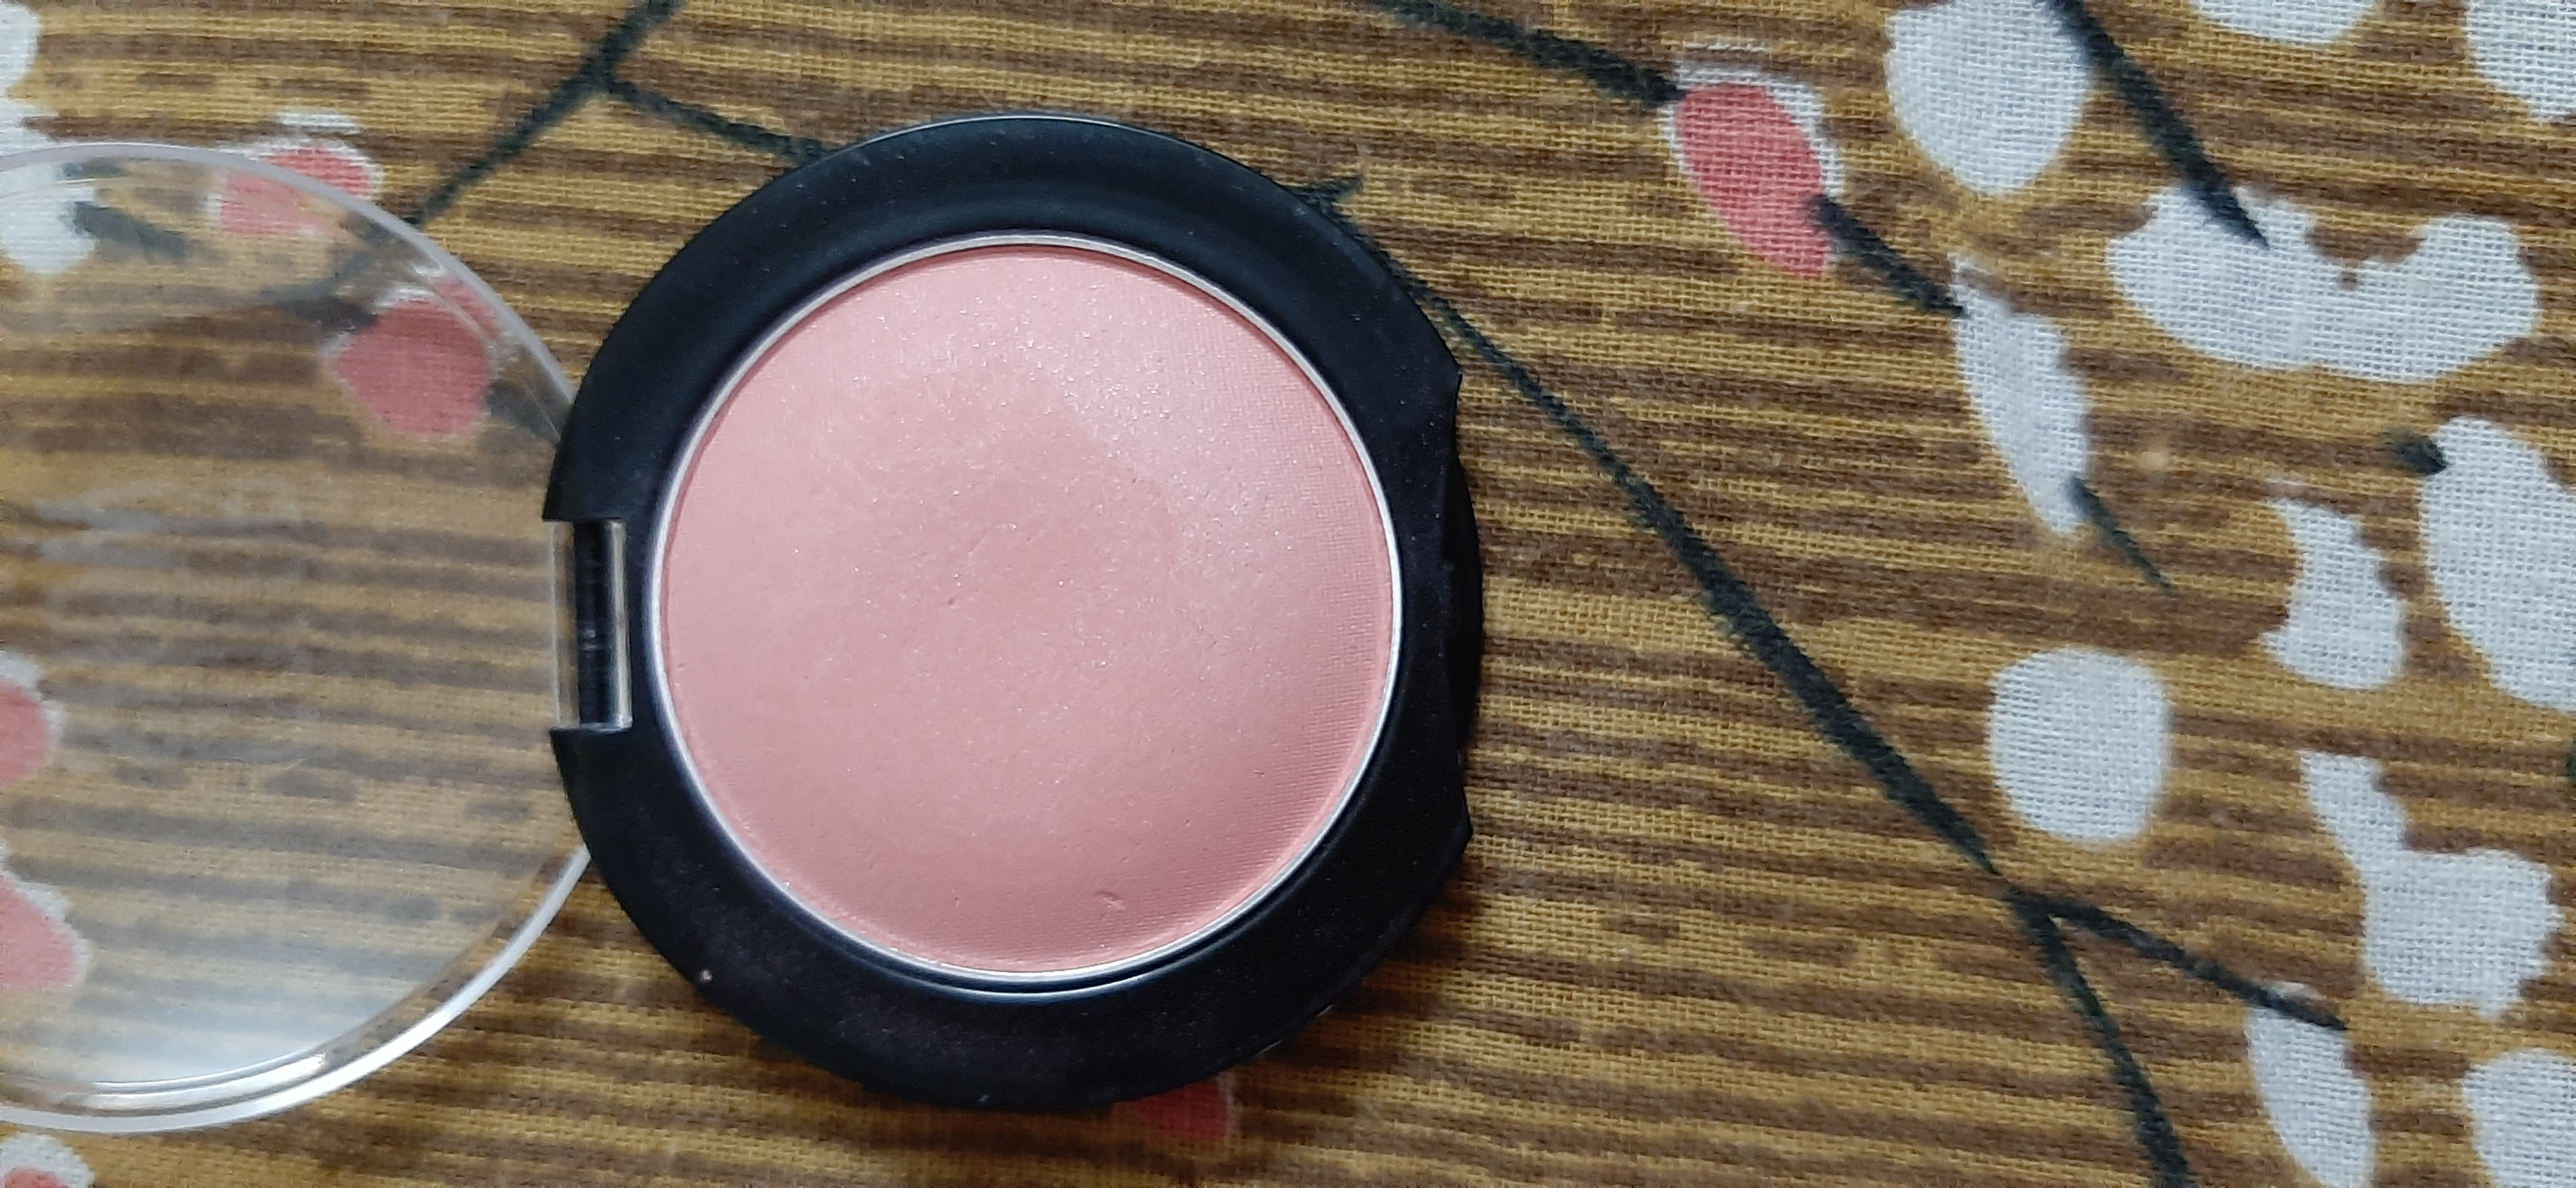 Maybelline Color Show Blush-Maybelline color show blush-By samira_haider-3